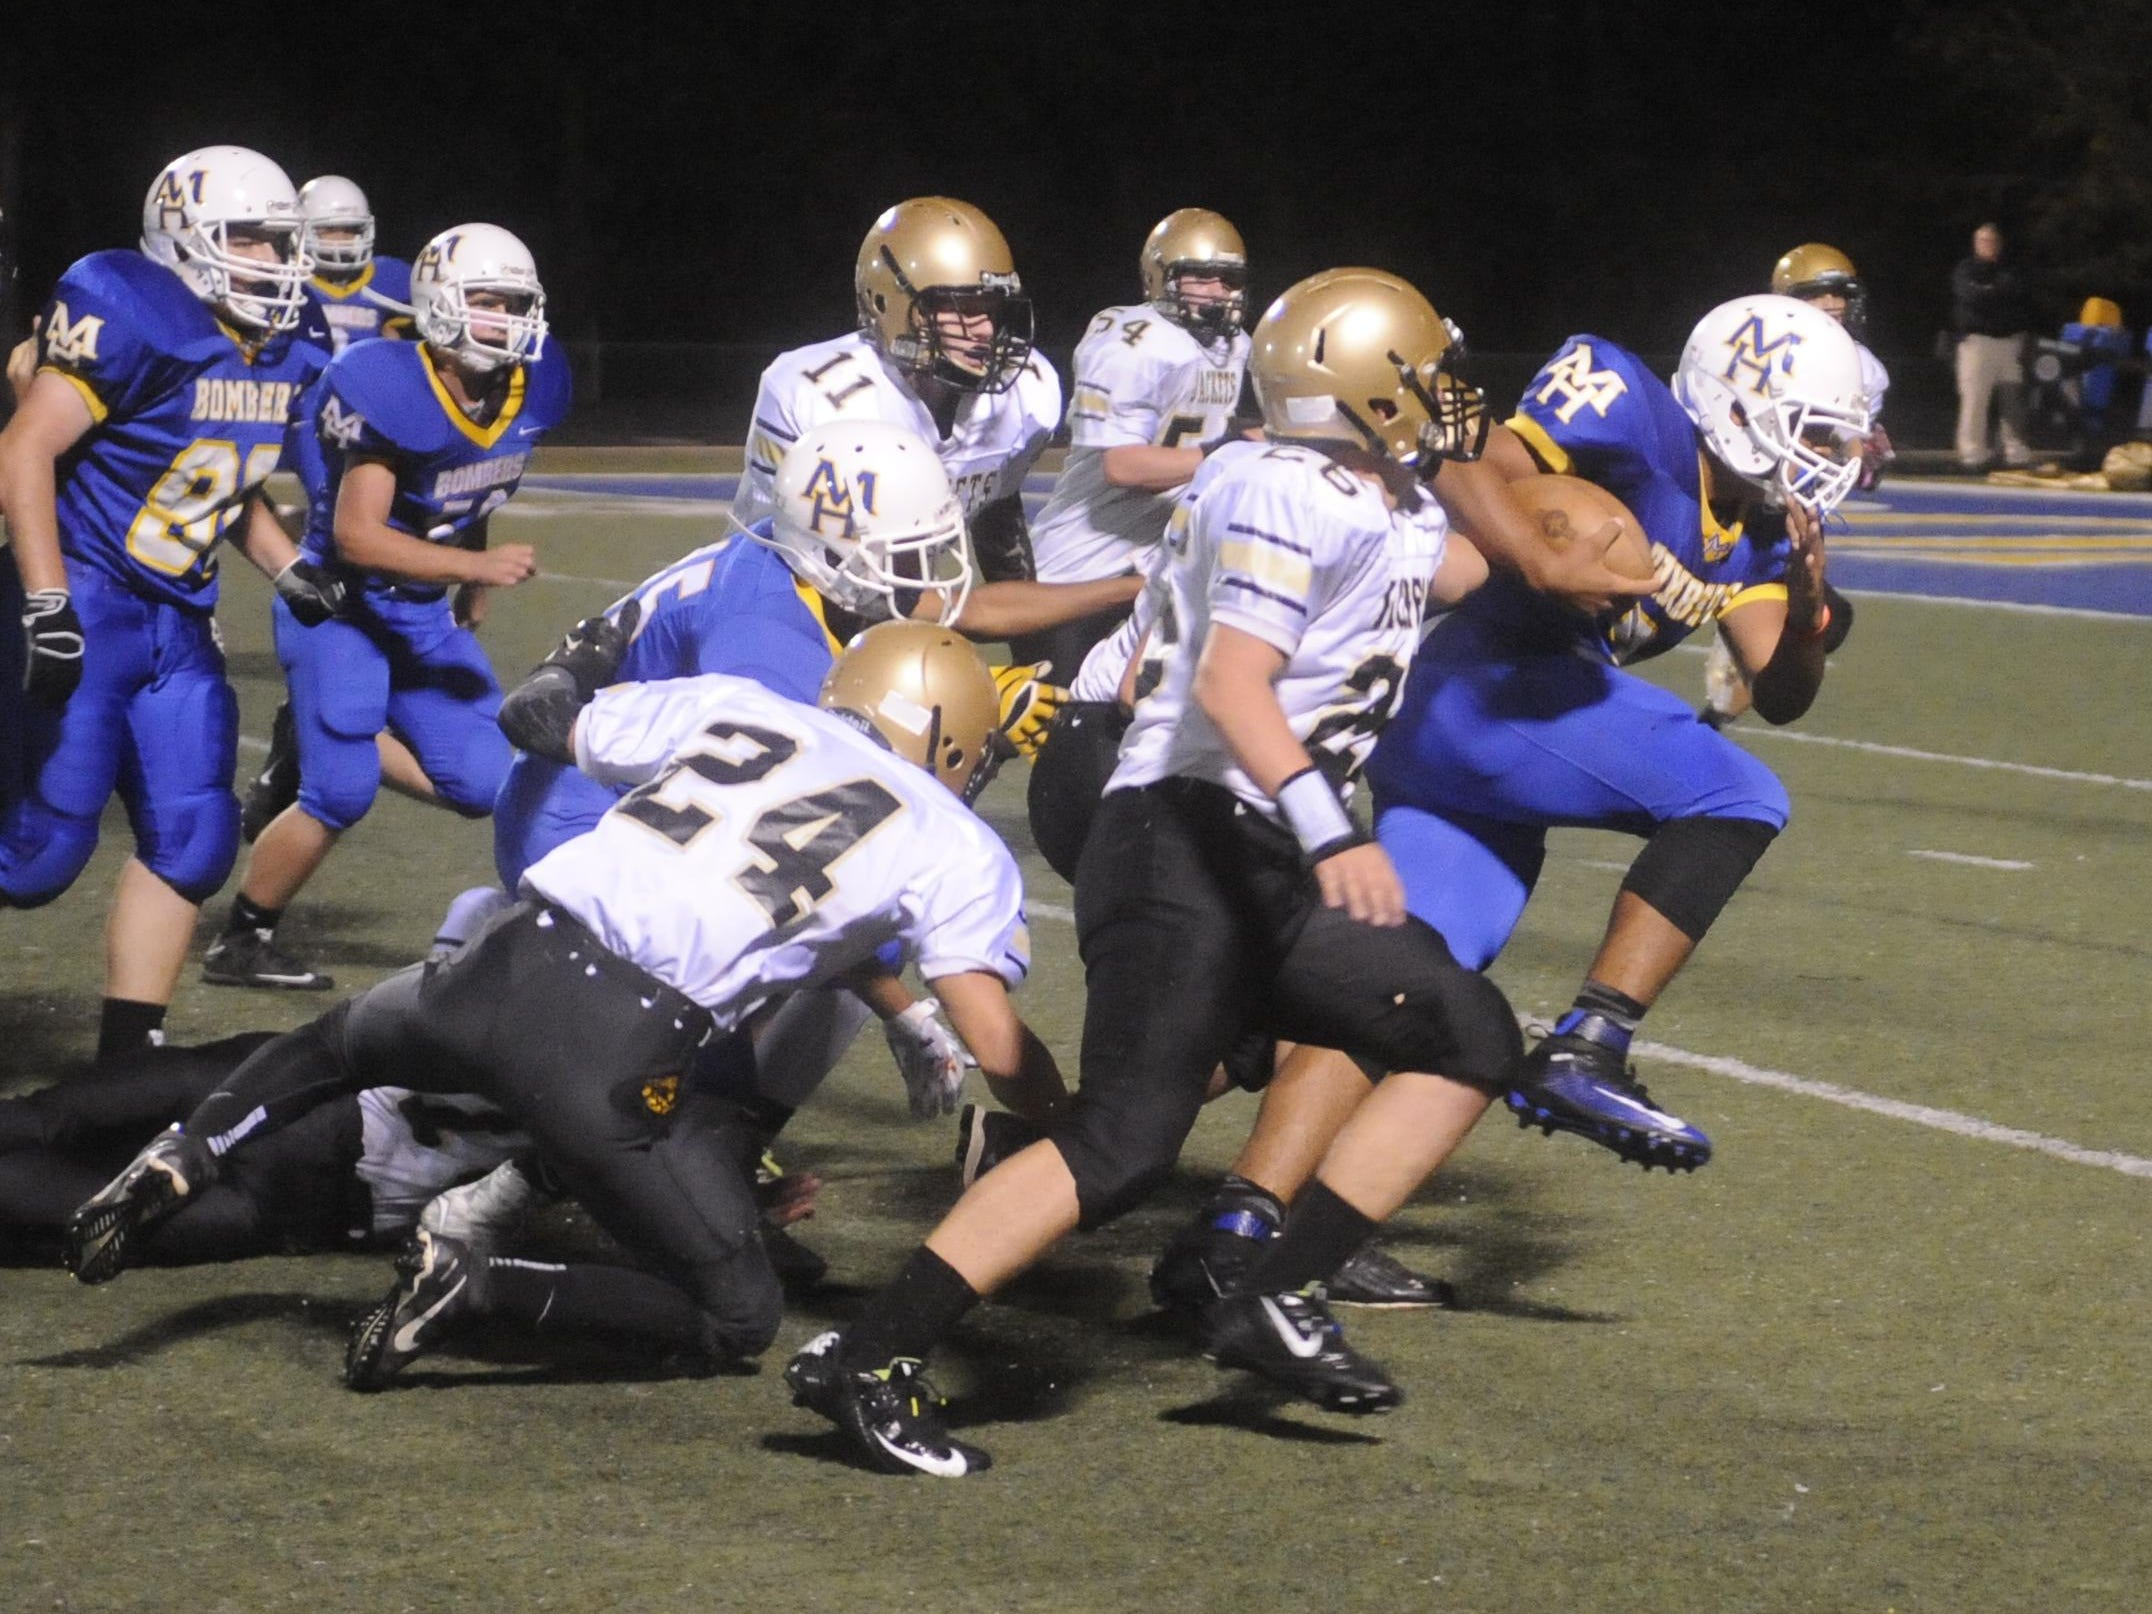 Mountain Home's Junior Williams, right, drags several Clinton defenders for a big gain during the Junior Bombers' 30-14 victory on Thursday night at Bomber Stadium. Williams rushed 22 times for 203 yards in the victory over the Yellowjackets.